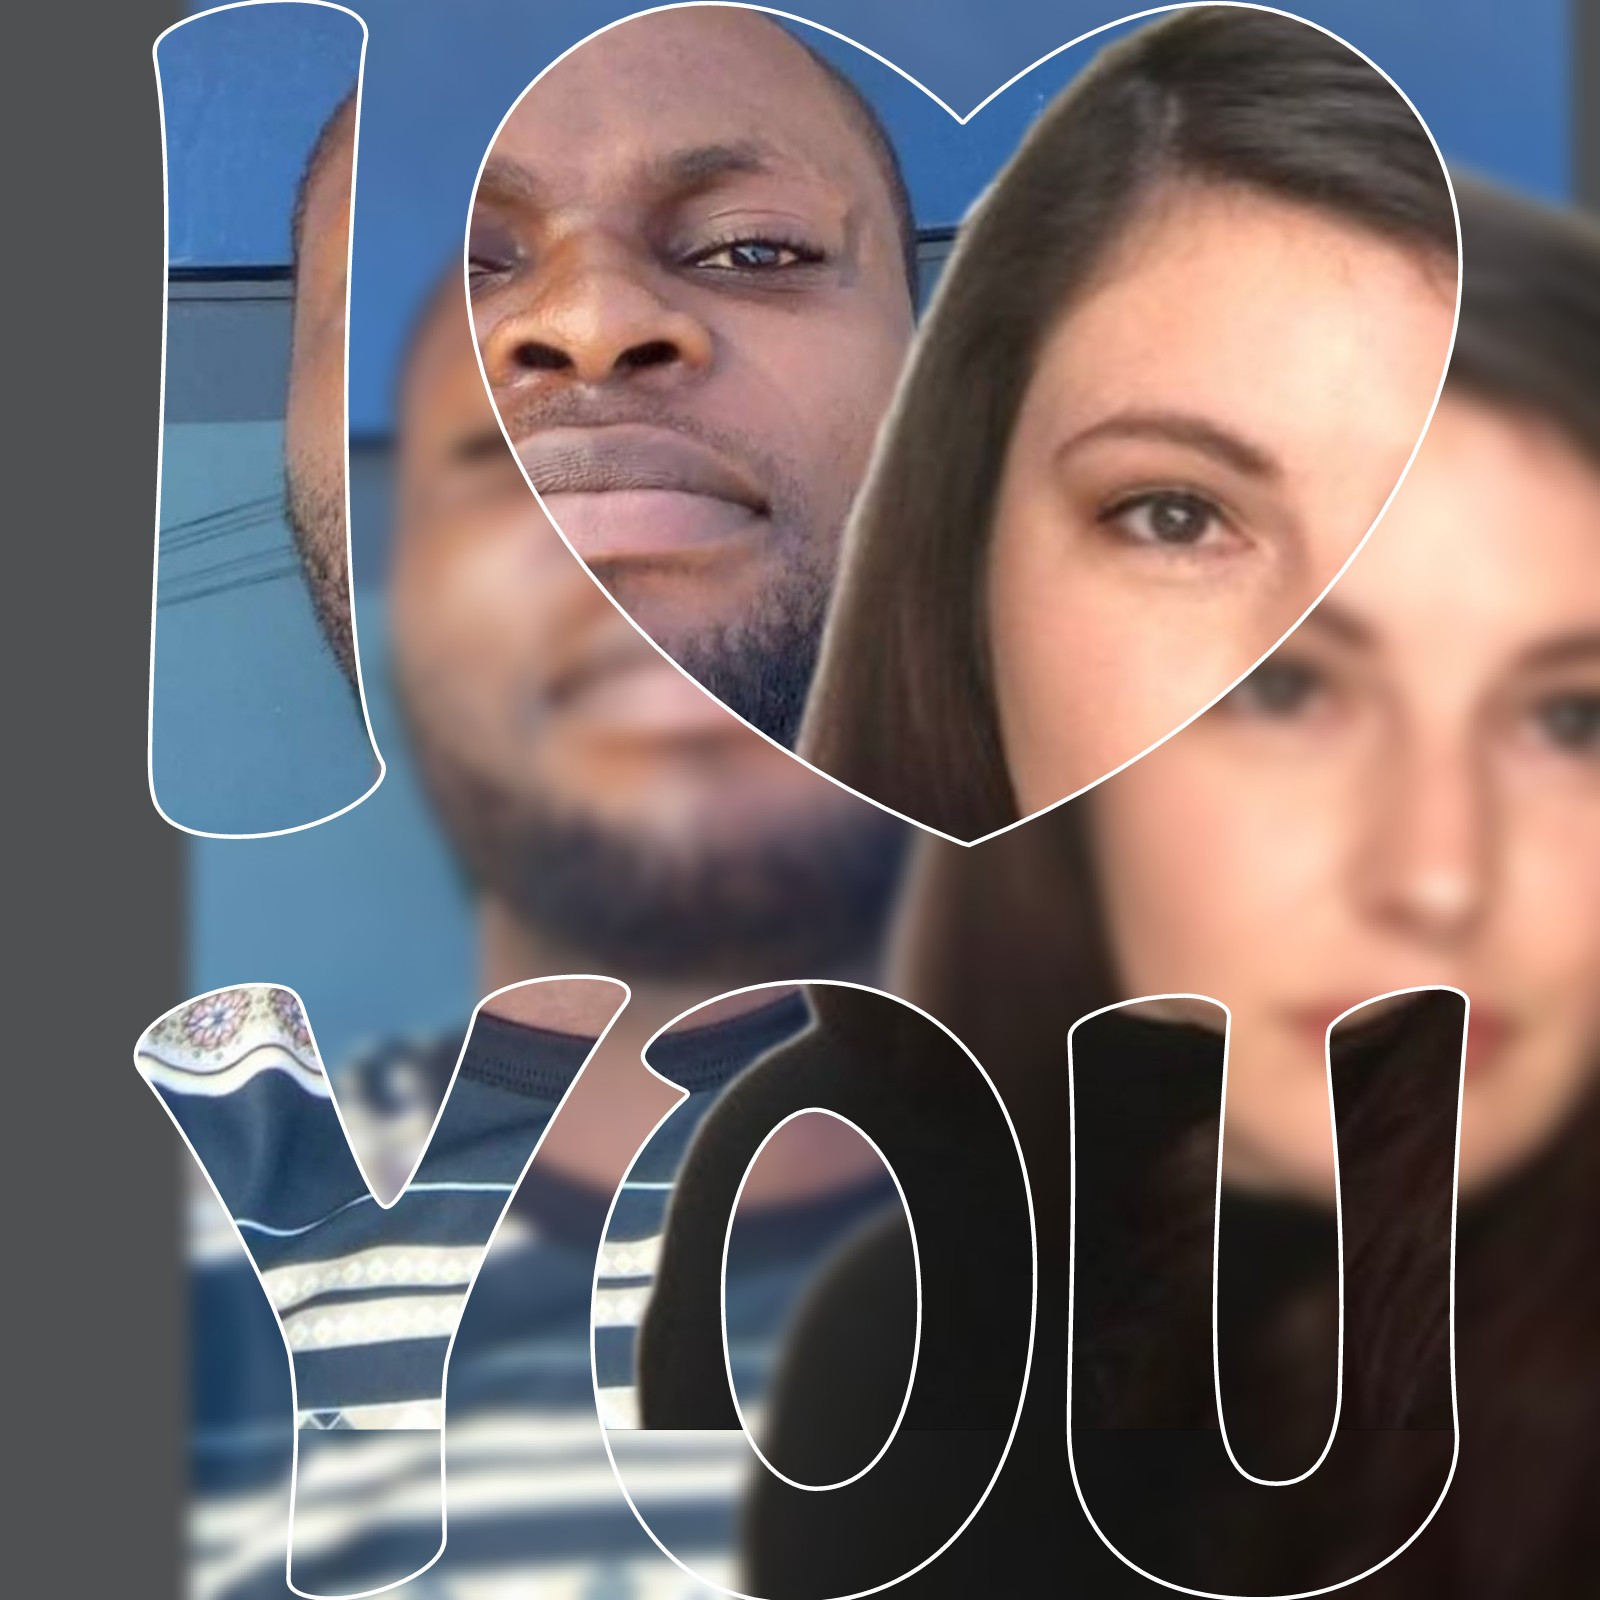 White woman responds to Nigerian man who professed love for her after she asked for beautiful photos of Nigeria